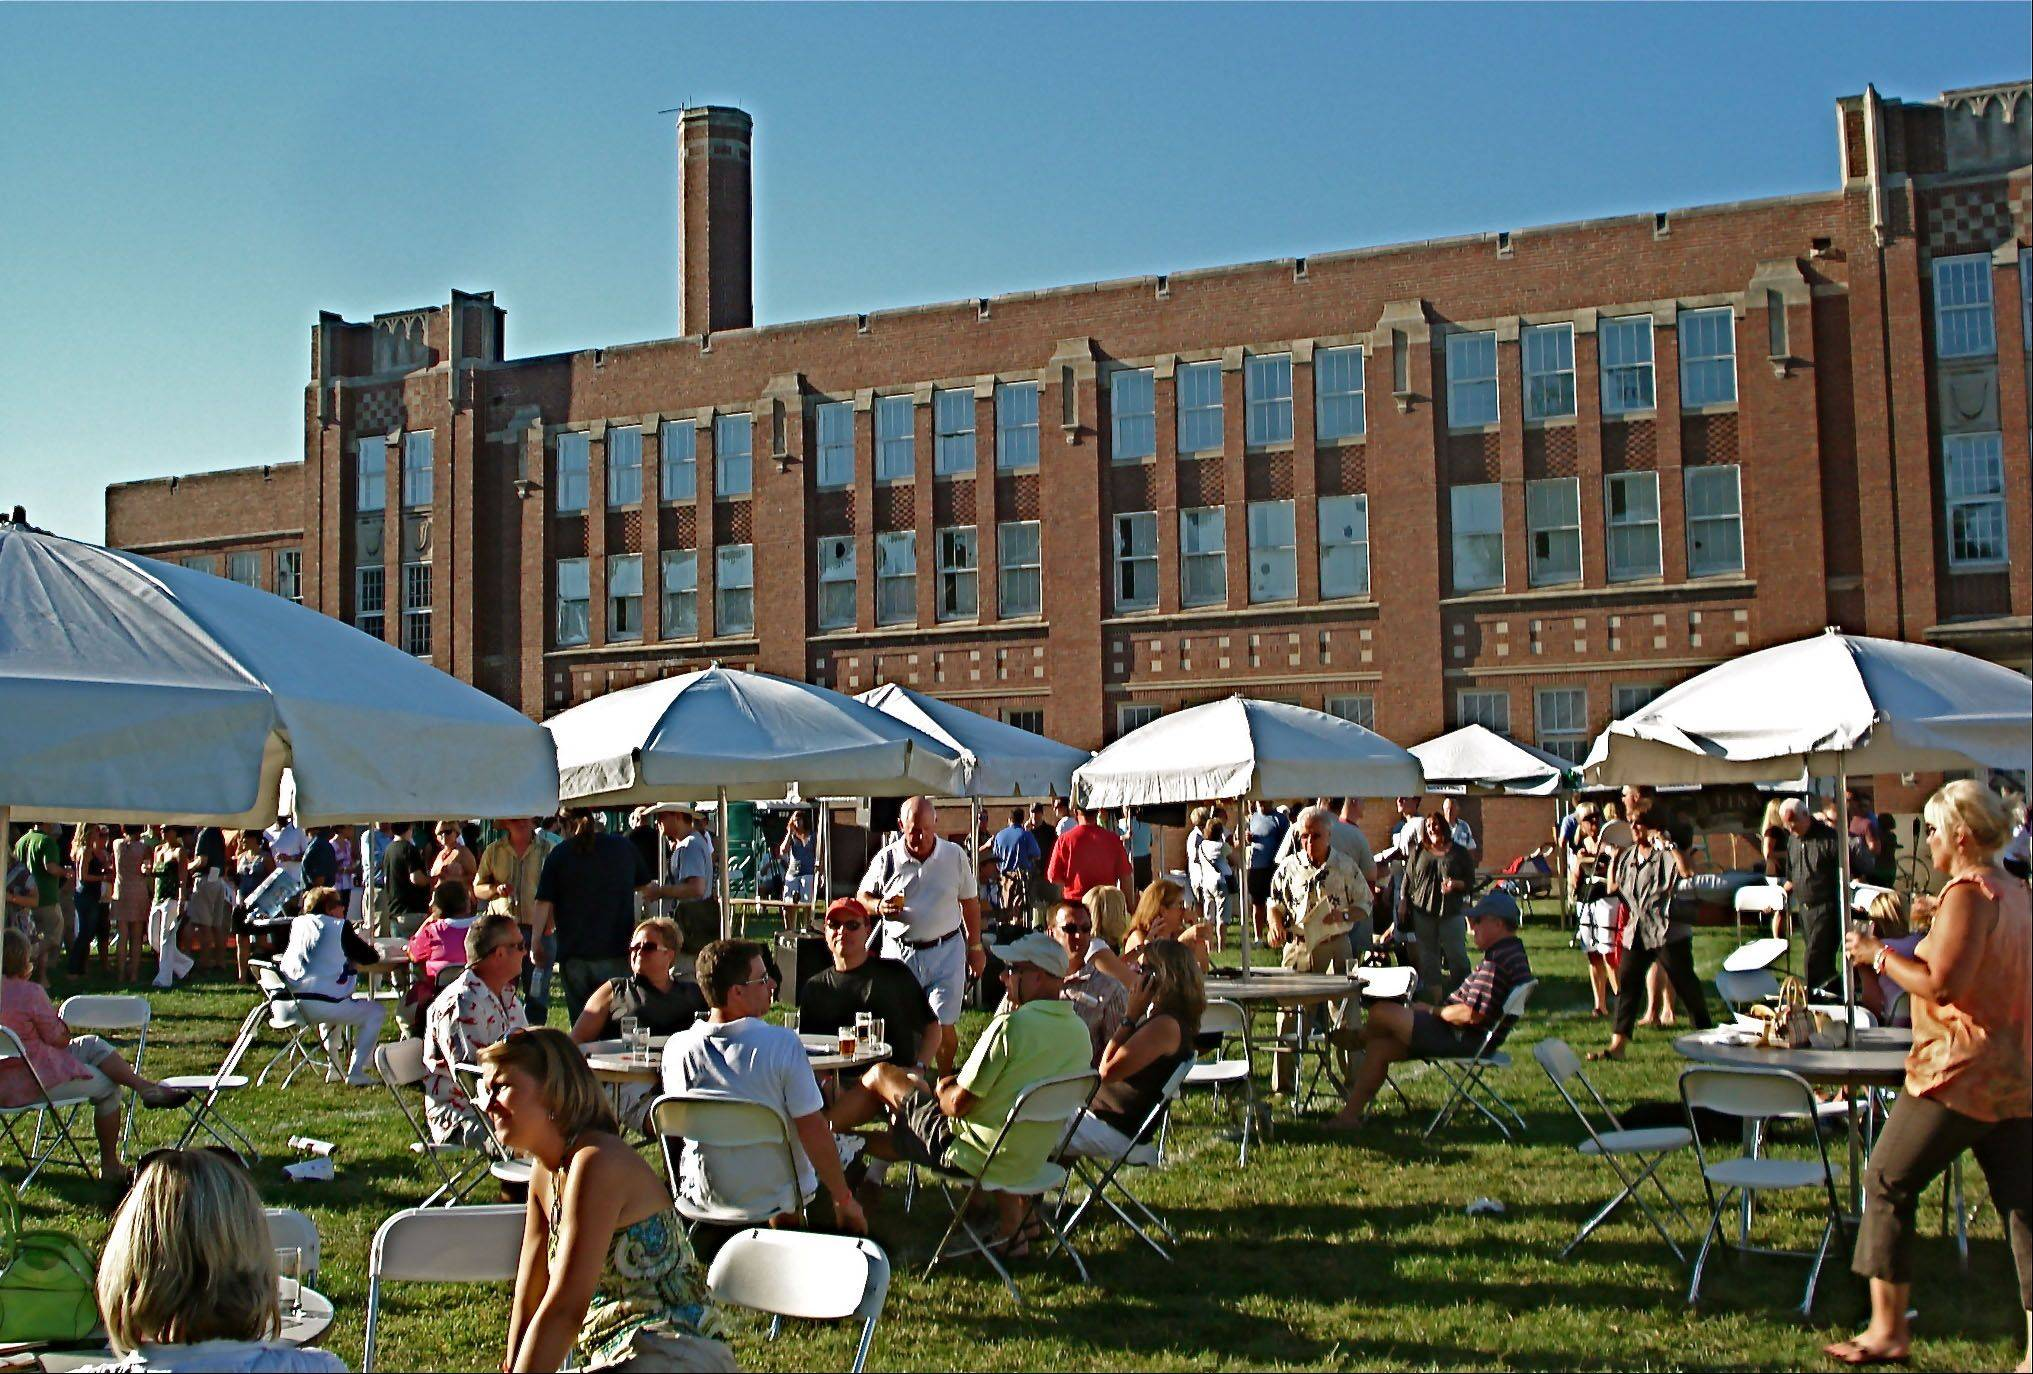 The second North Shore Wine, Beer, Cigar, and Food Festival runs from 3 to 8:30 p.m. Saturday, Aug. 27, at the Brainerd building in Libertyville. The event is a fundraiser for a group trying to convert the building into a community center.